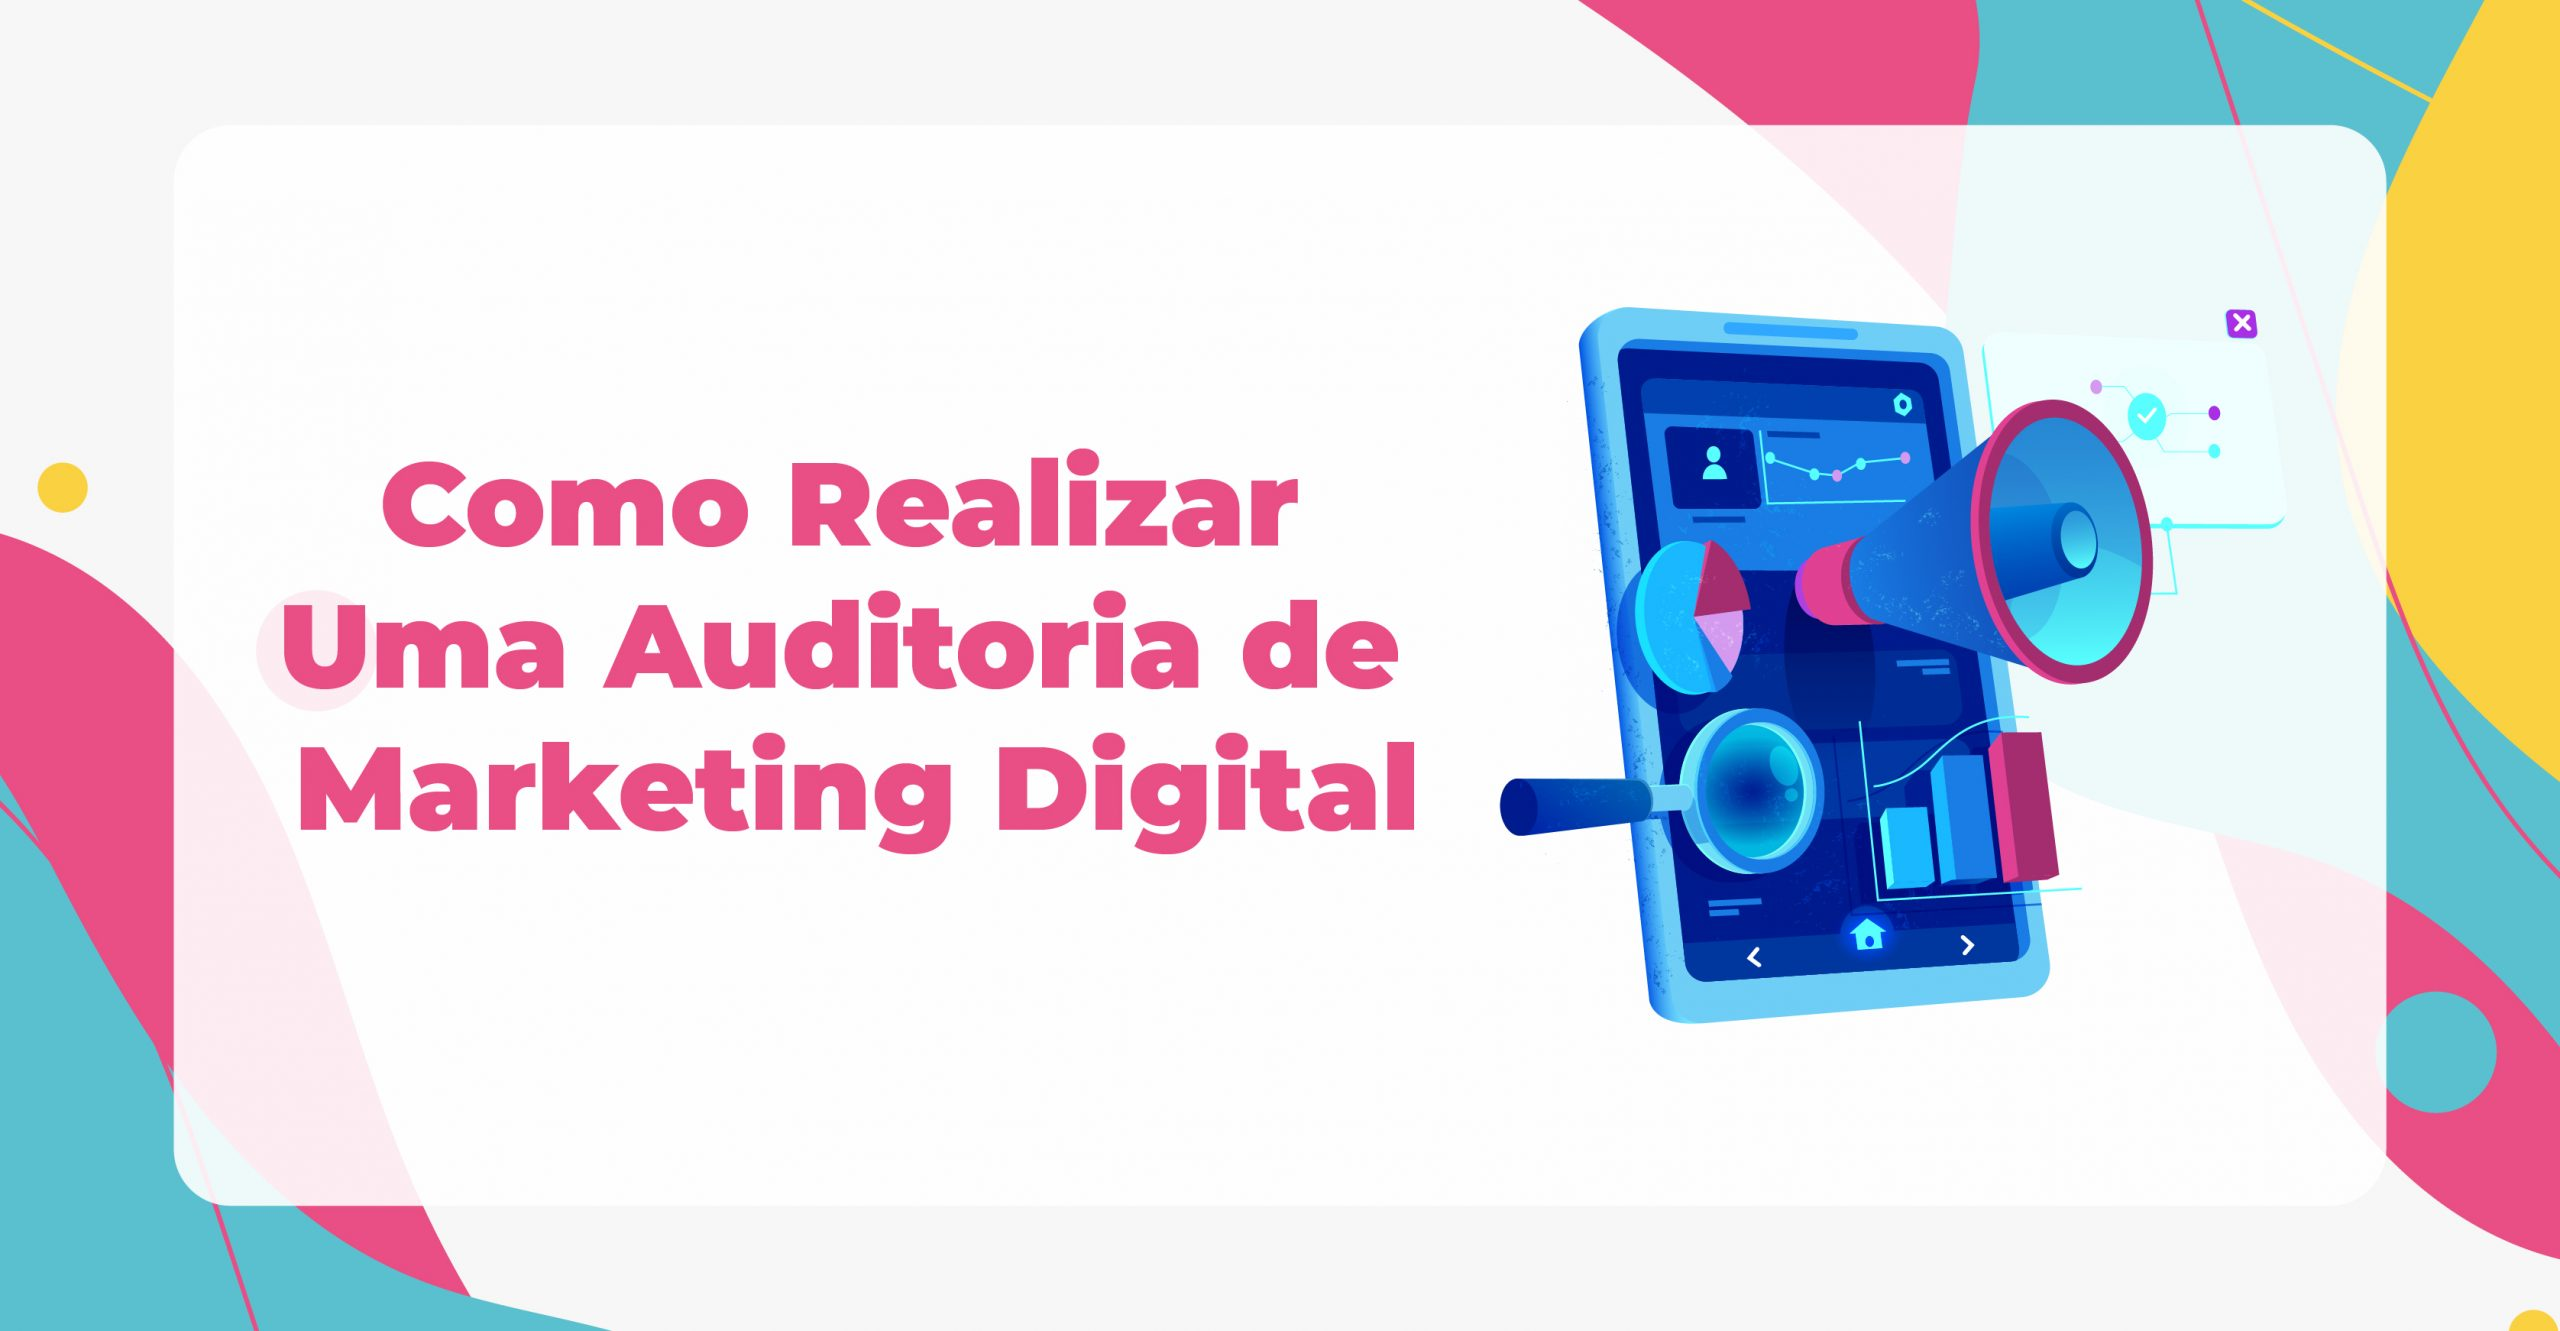 Bemyself_Como Realizar Uma Auditoria de Marketing Digital